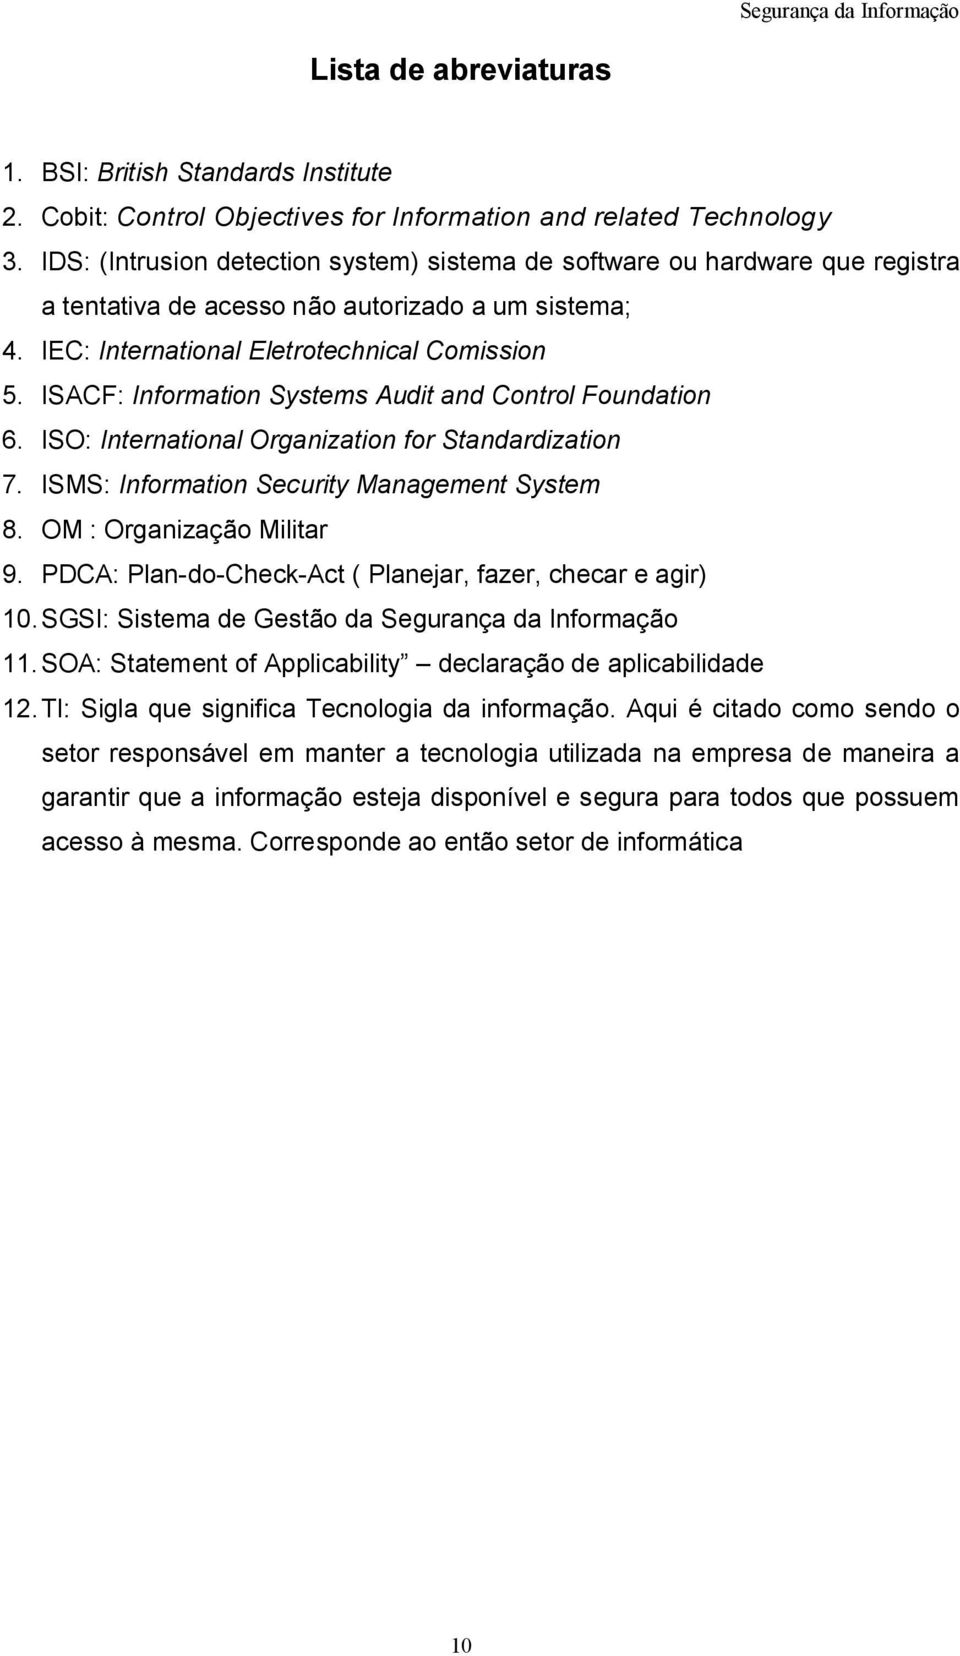 ISACF: Information Systems Audit and Control Foundation 6. ISO: International Organization for Standardization 7. ISMS: Information Security Management System 8. OM : Organização Militar 9.